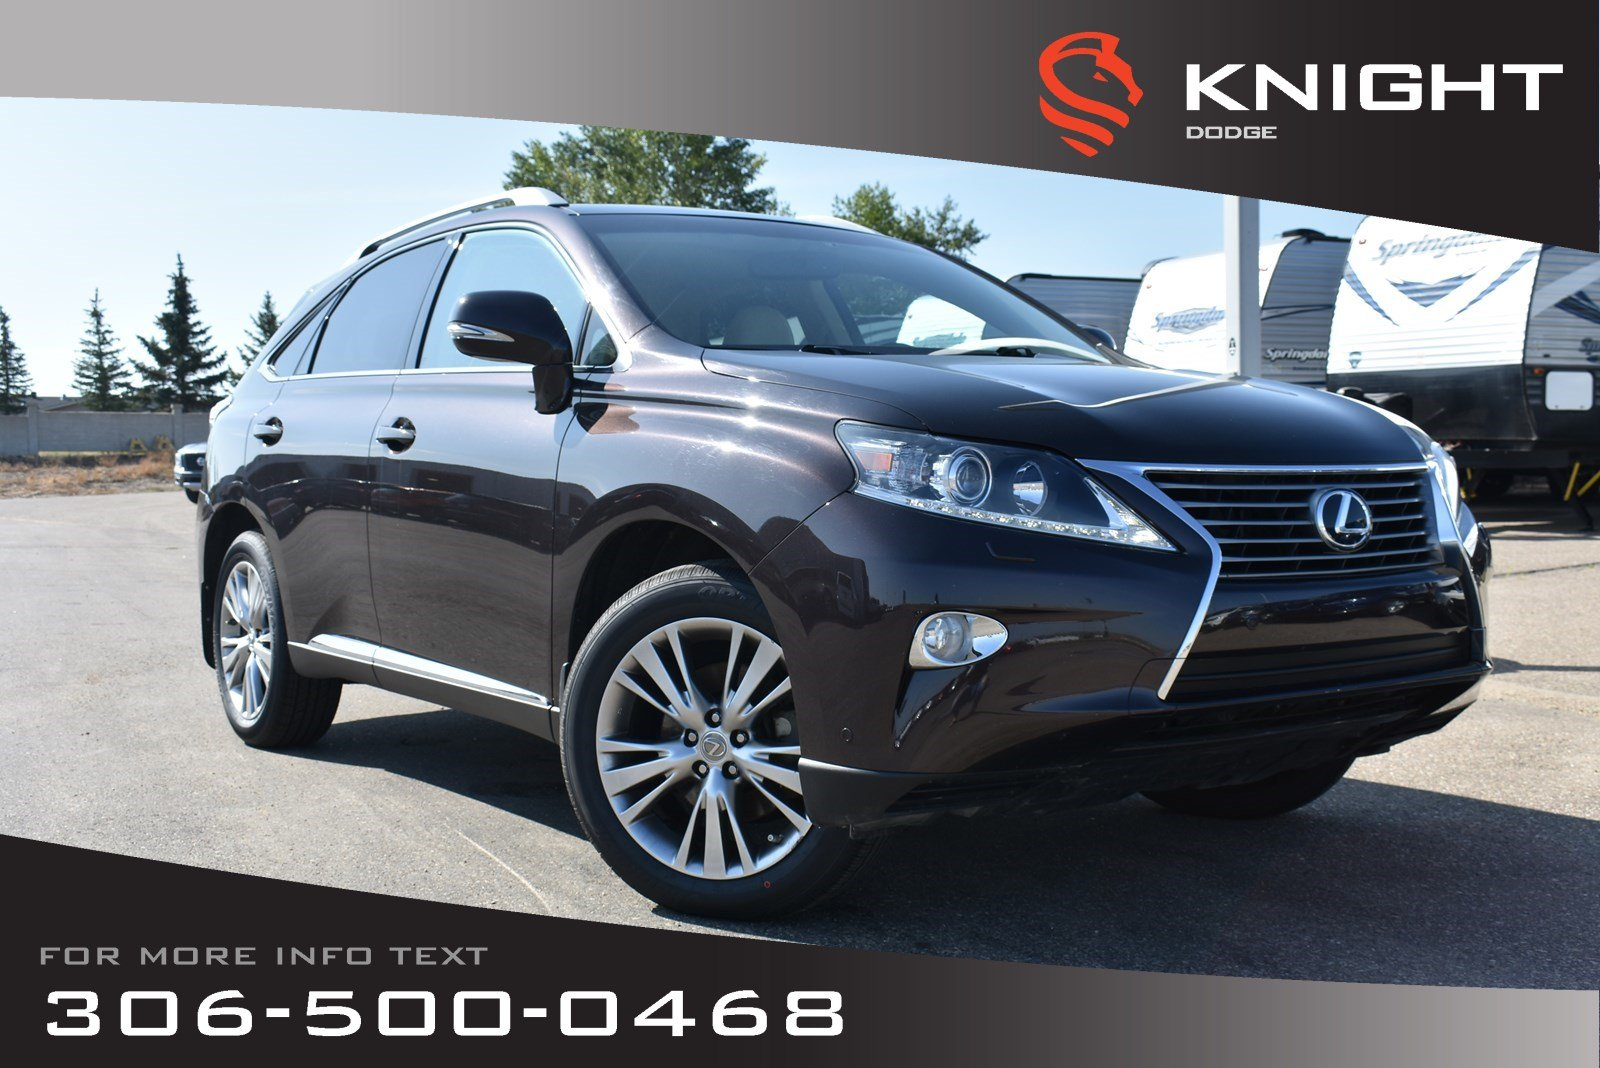 Pre-Owned 2014 Lexus RX 350 | Leather | Heated & Cooled Seats | Navigation |